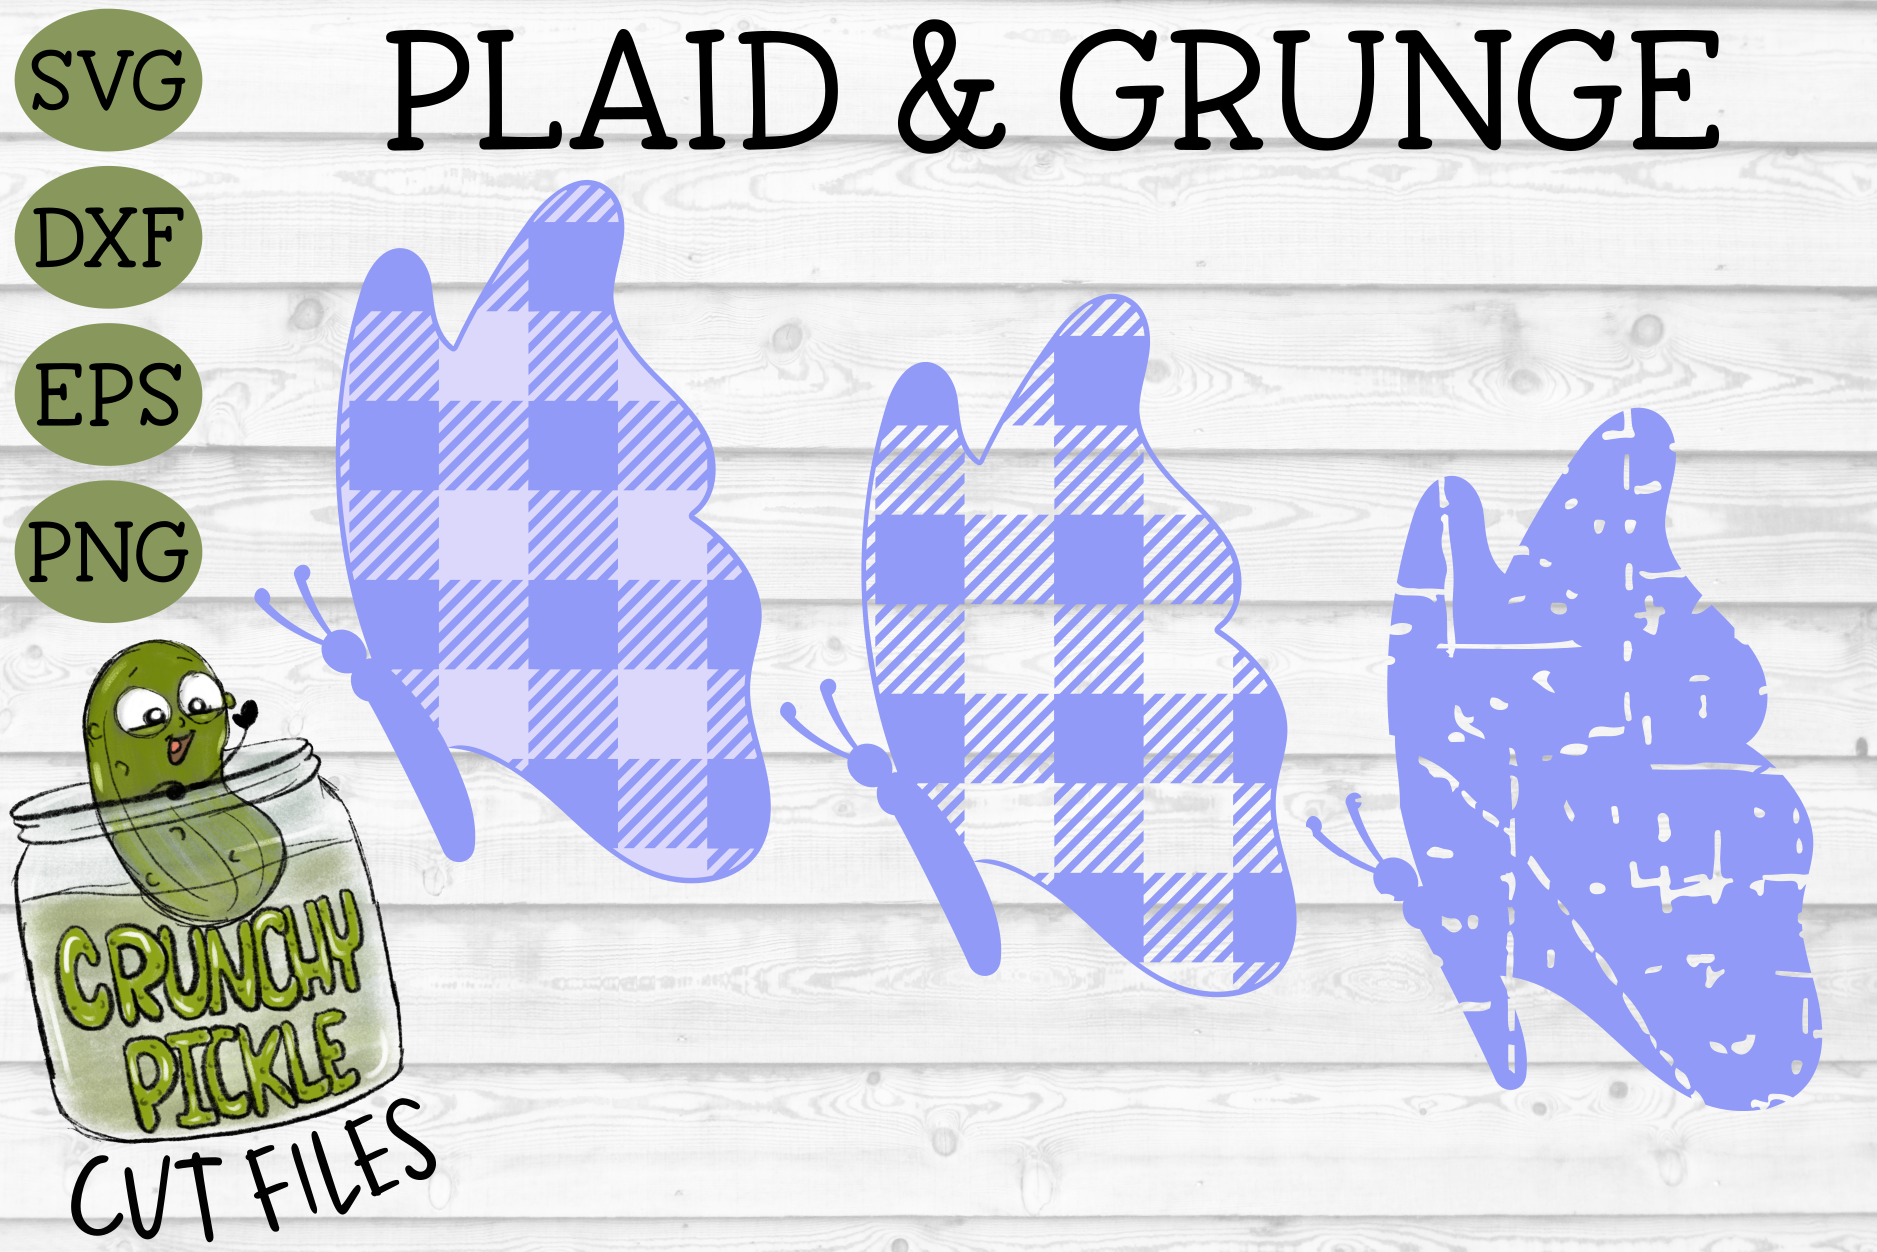 Plaid & Grunge Butterfly 2 SVG Cut File example image 1